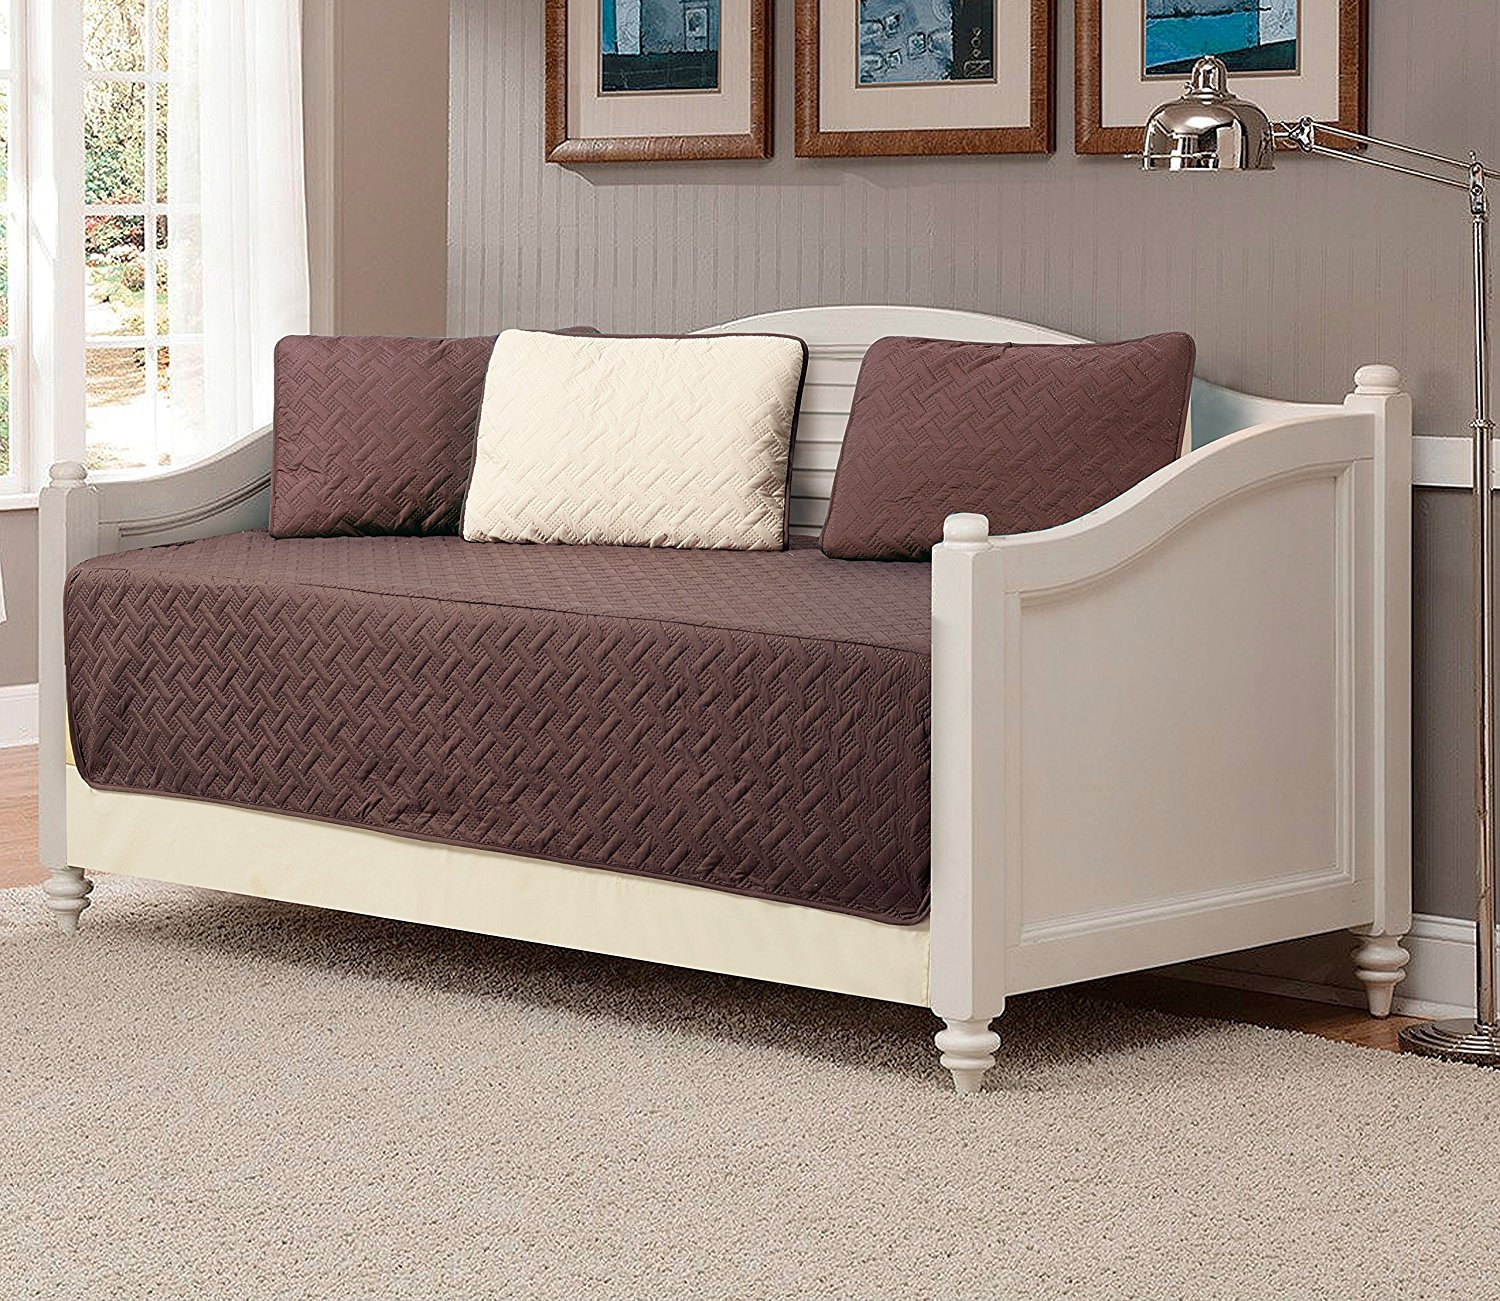 Fancy Collection 5pc DayBed Quilted Bedspread Coverlet Set Embossed Solid Coffee/Beige New